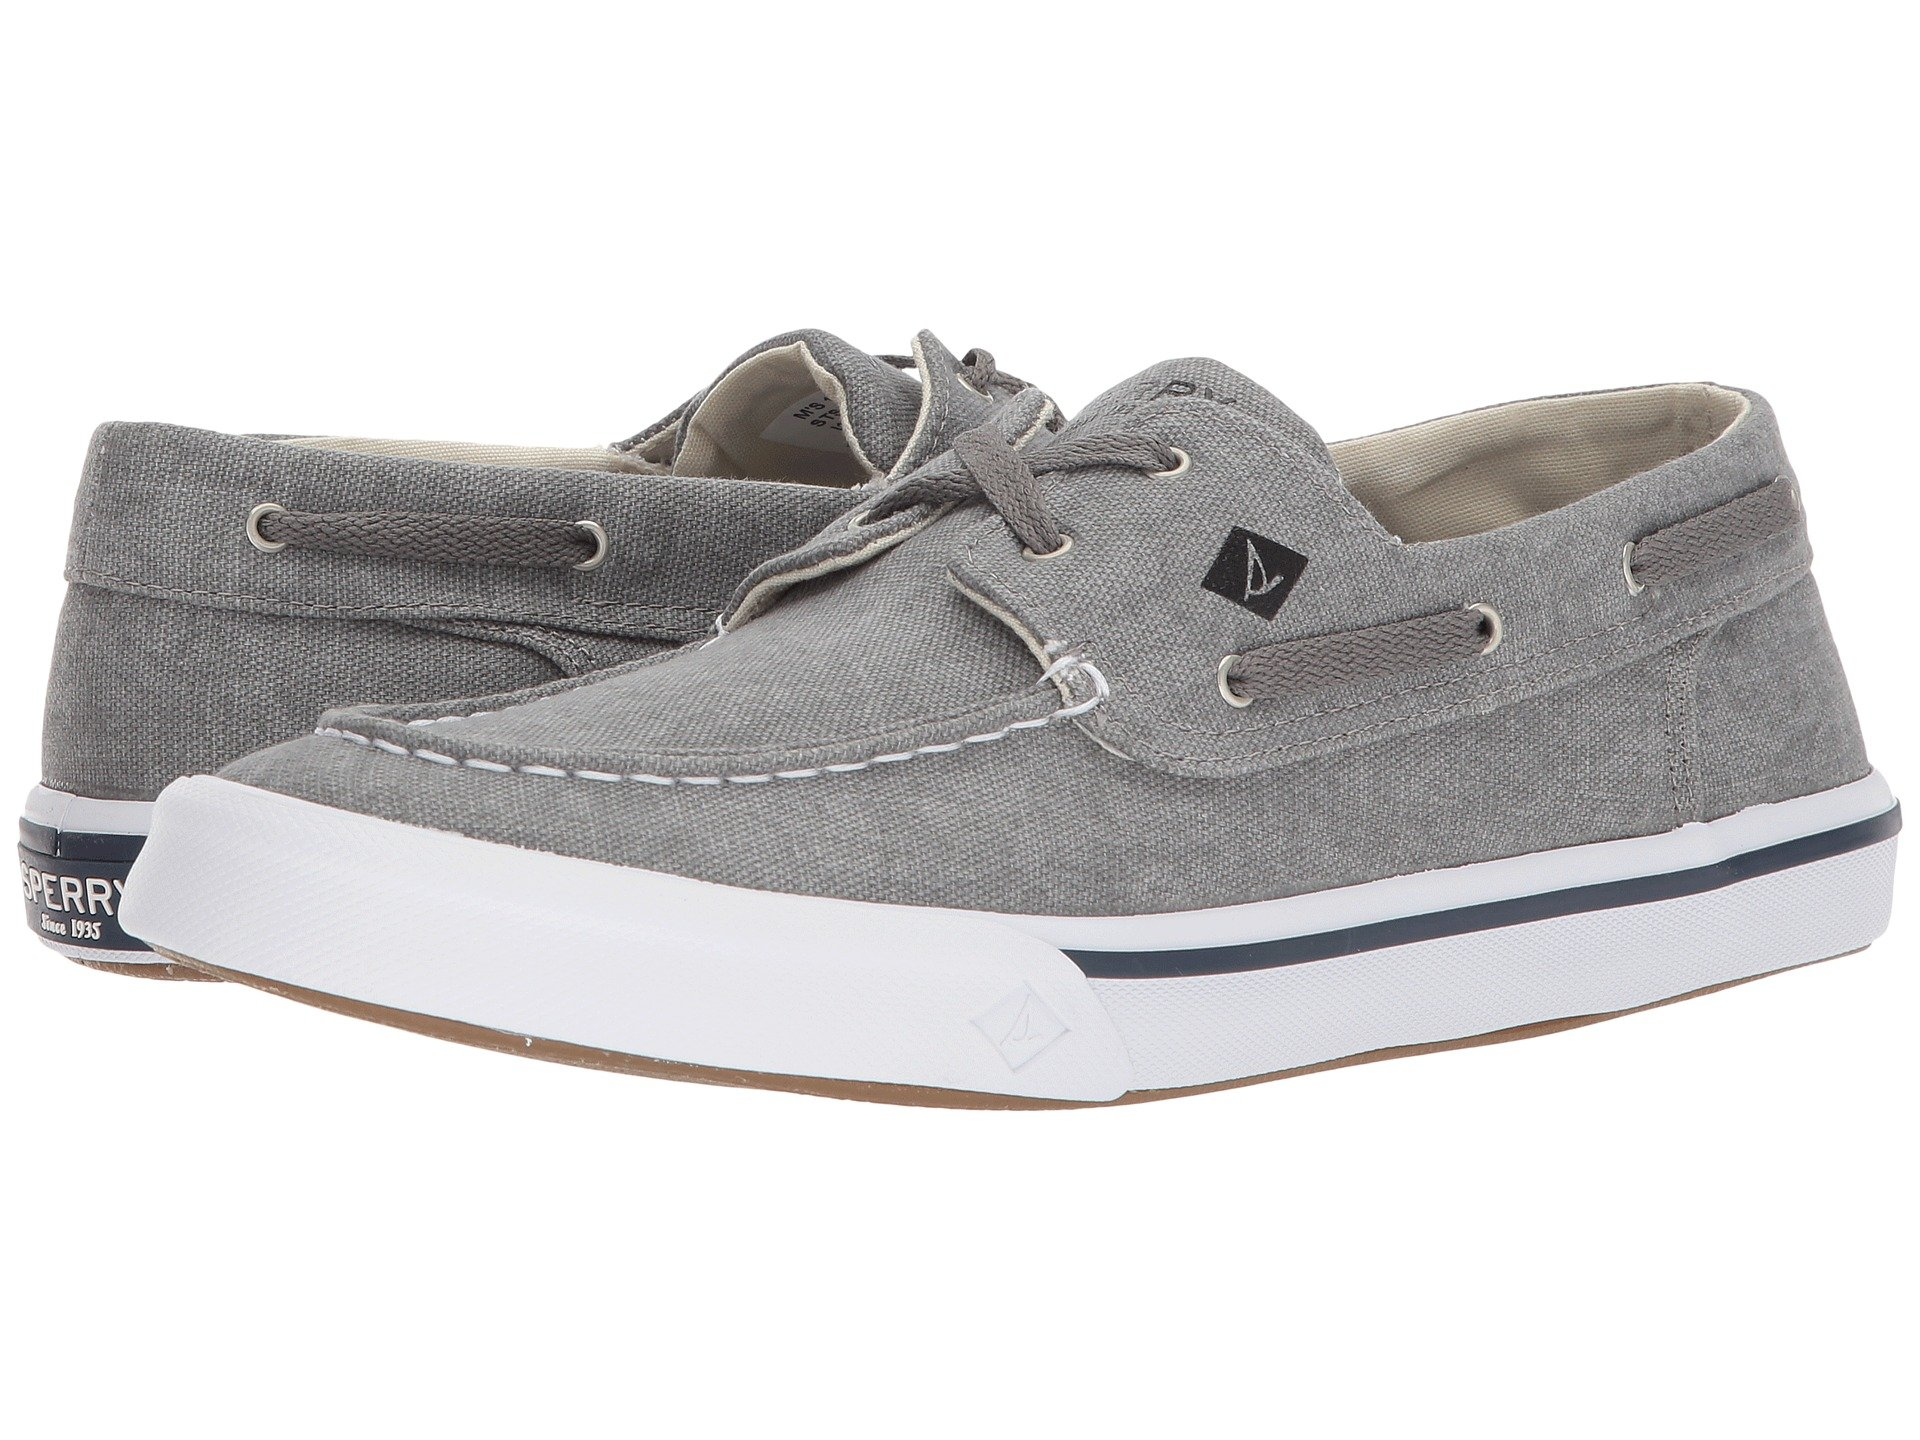 Shop Sperry Men's